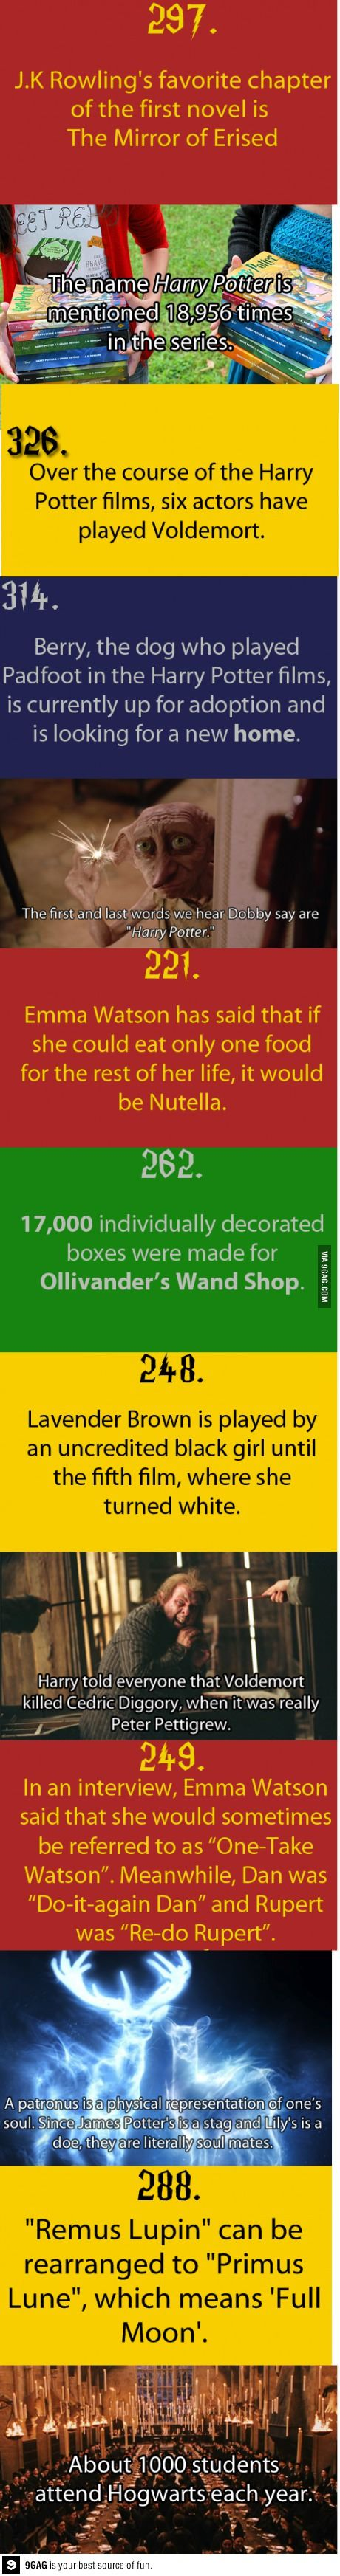 Just Some Harry Potter Facts Part 1